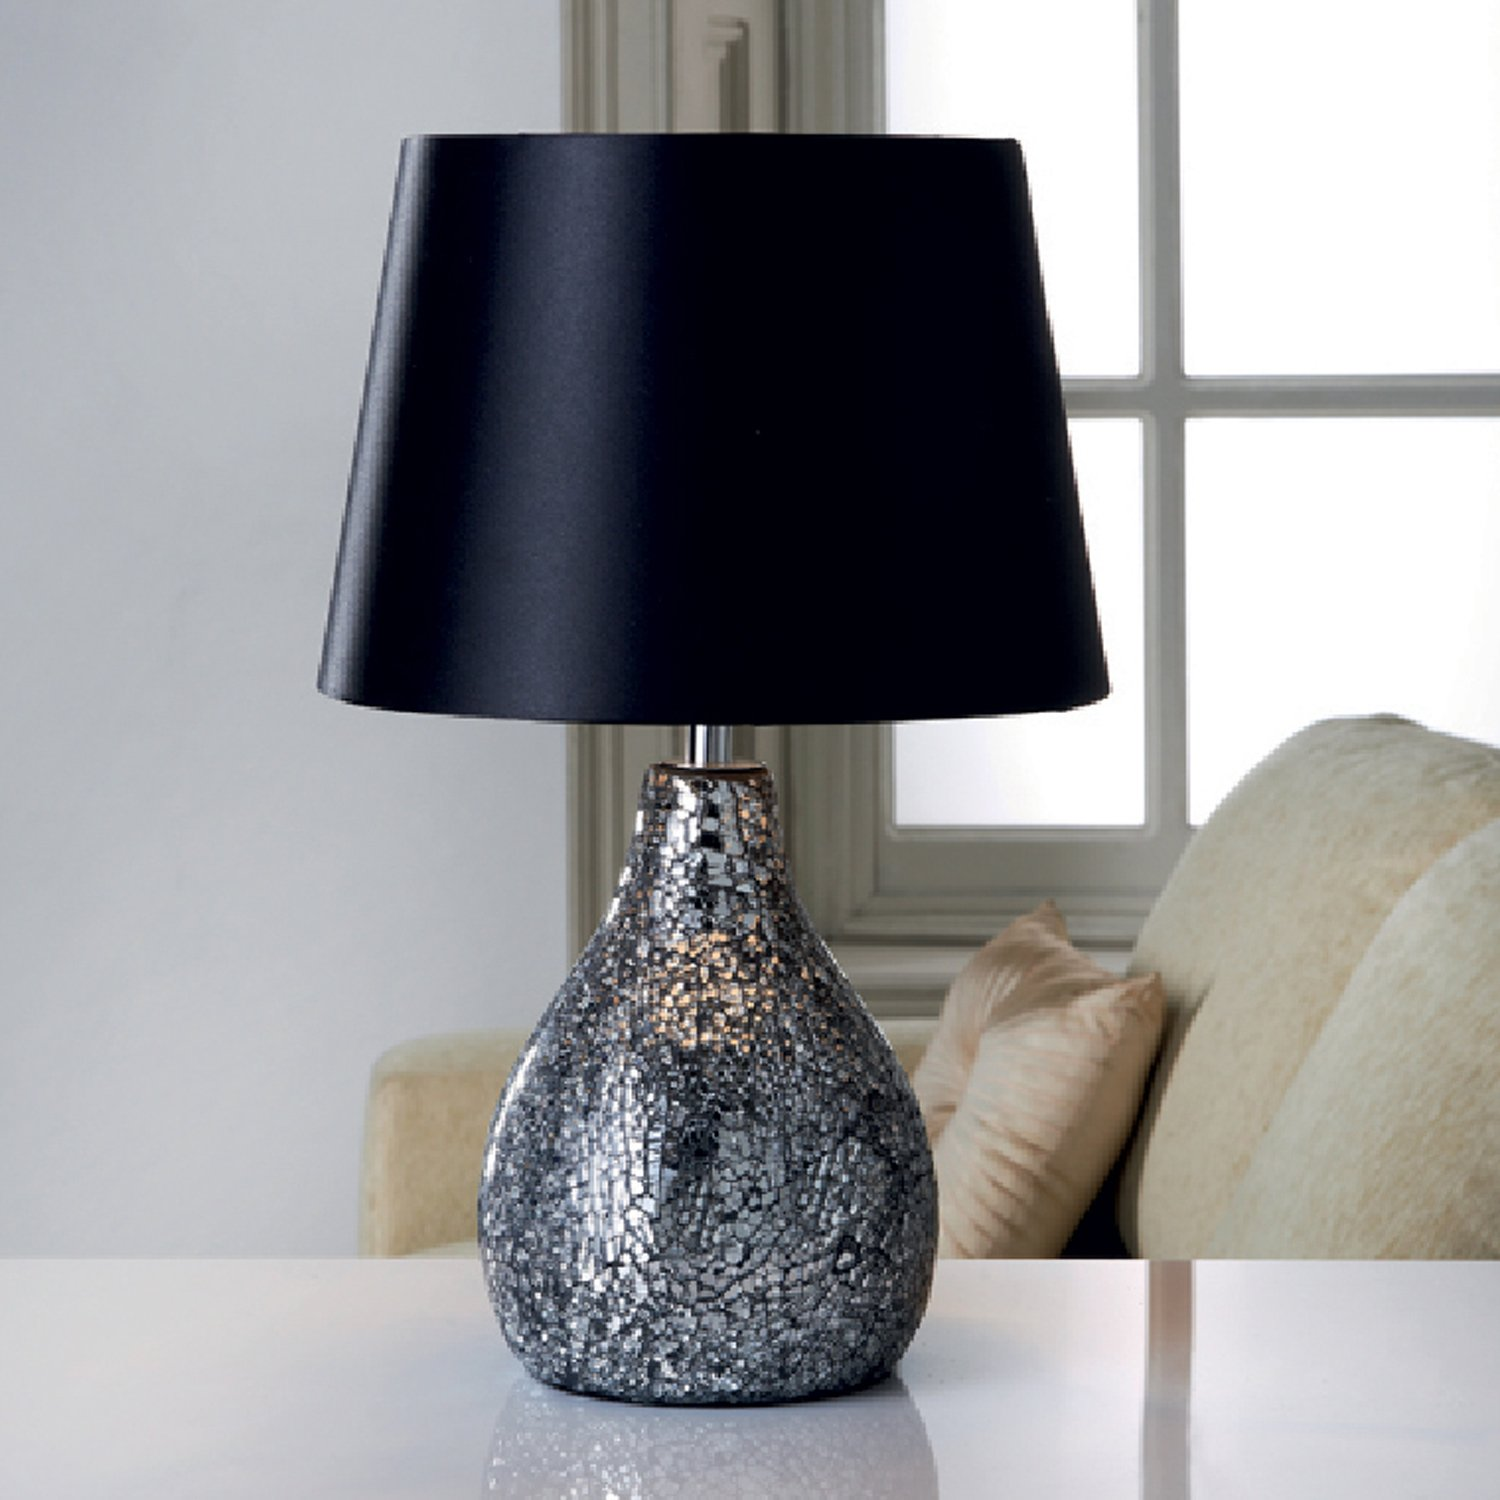 net large globe mosaic table lamp products turkishlights